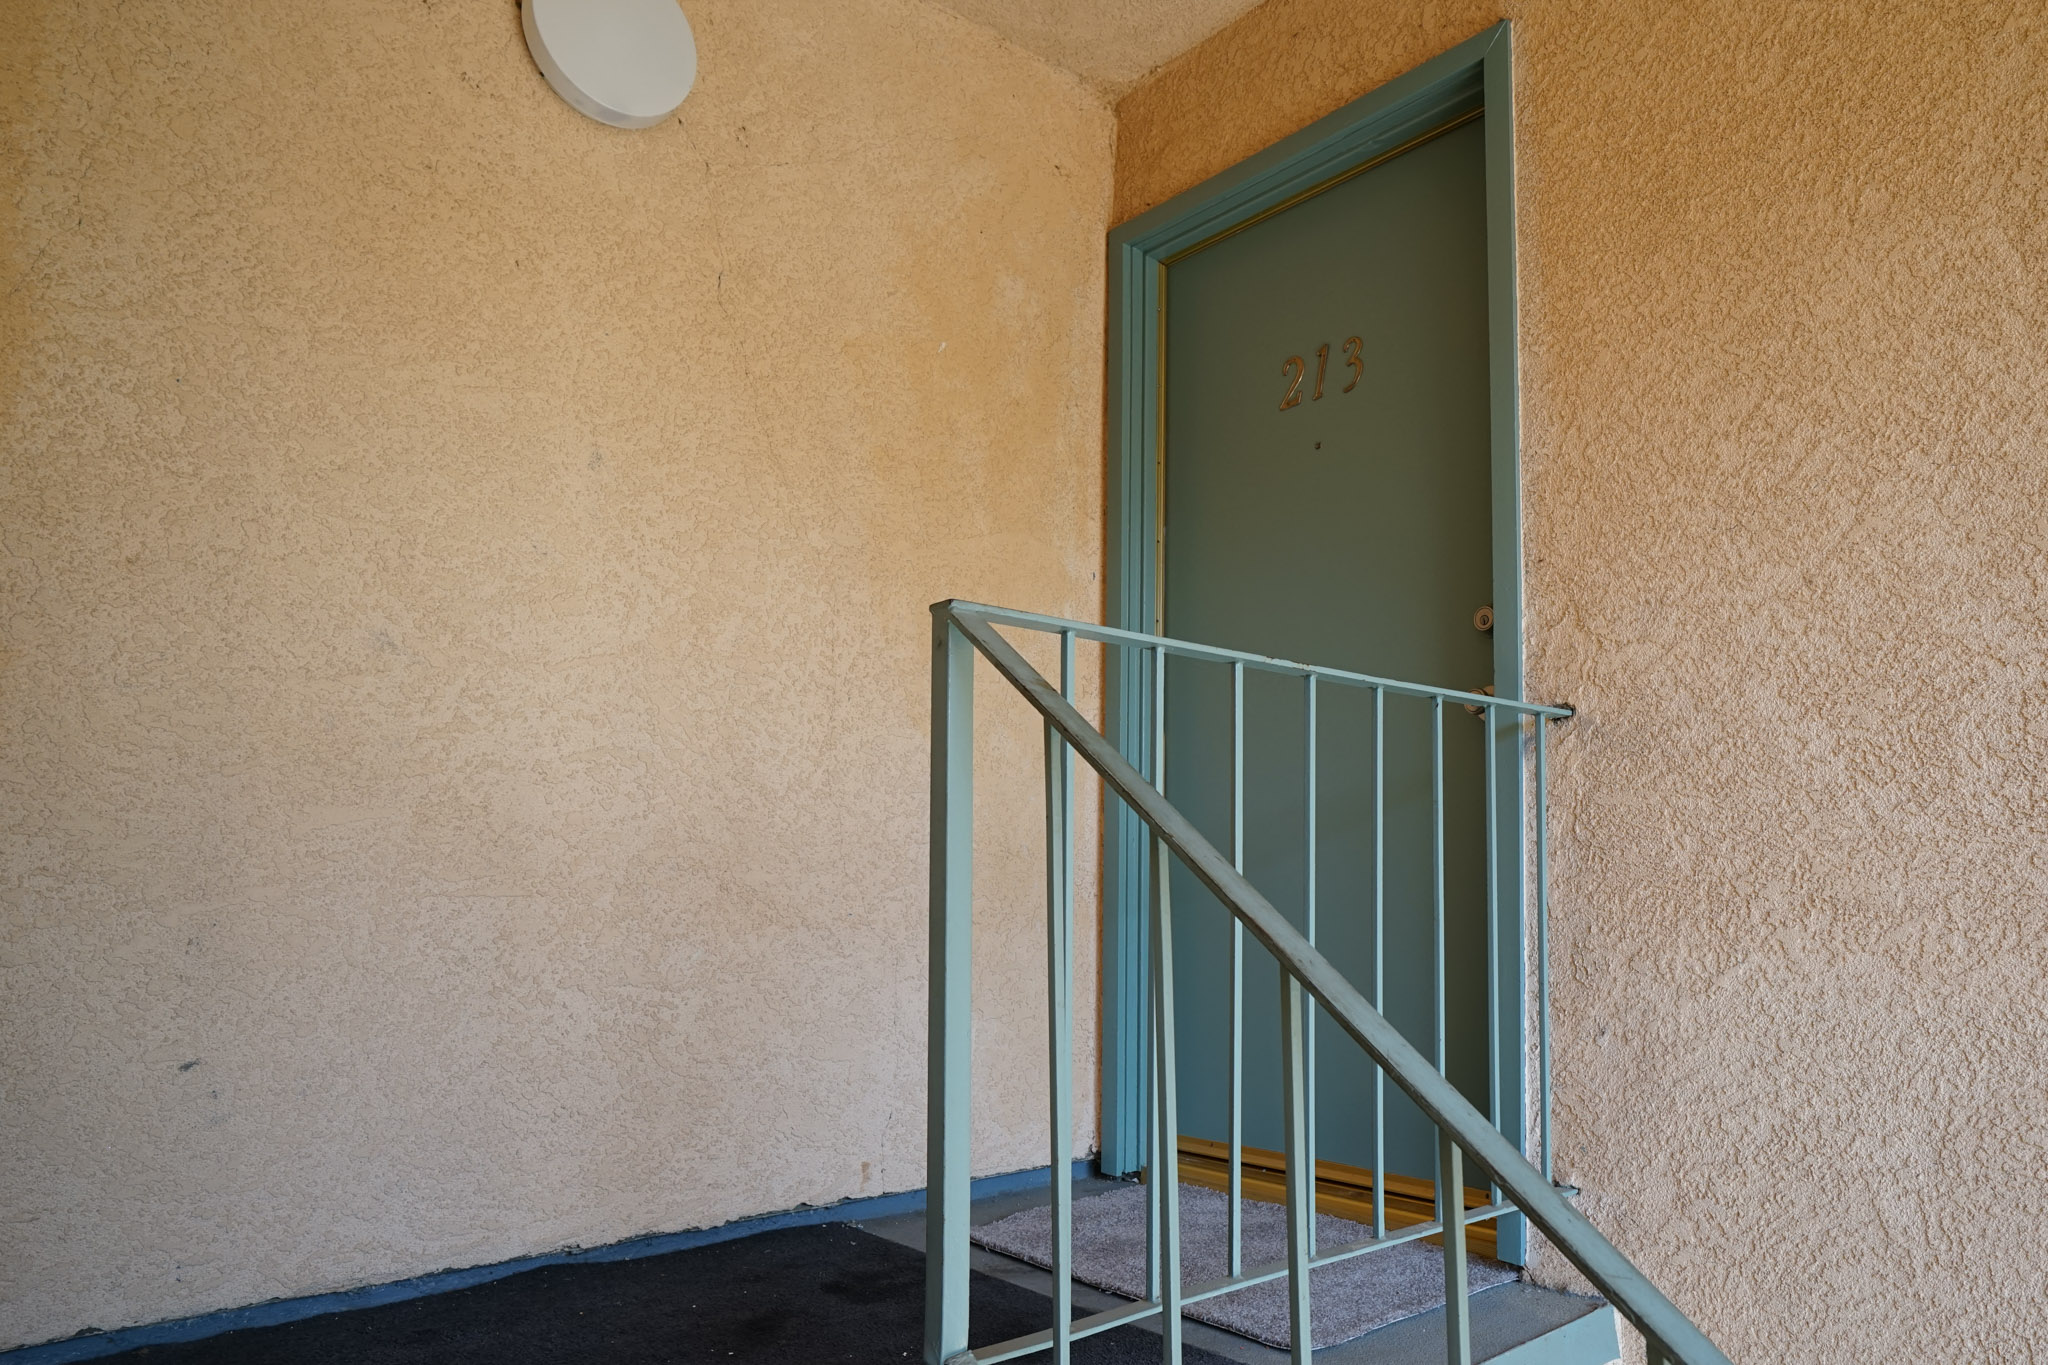 View of a unit's door that has a railing on the side.